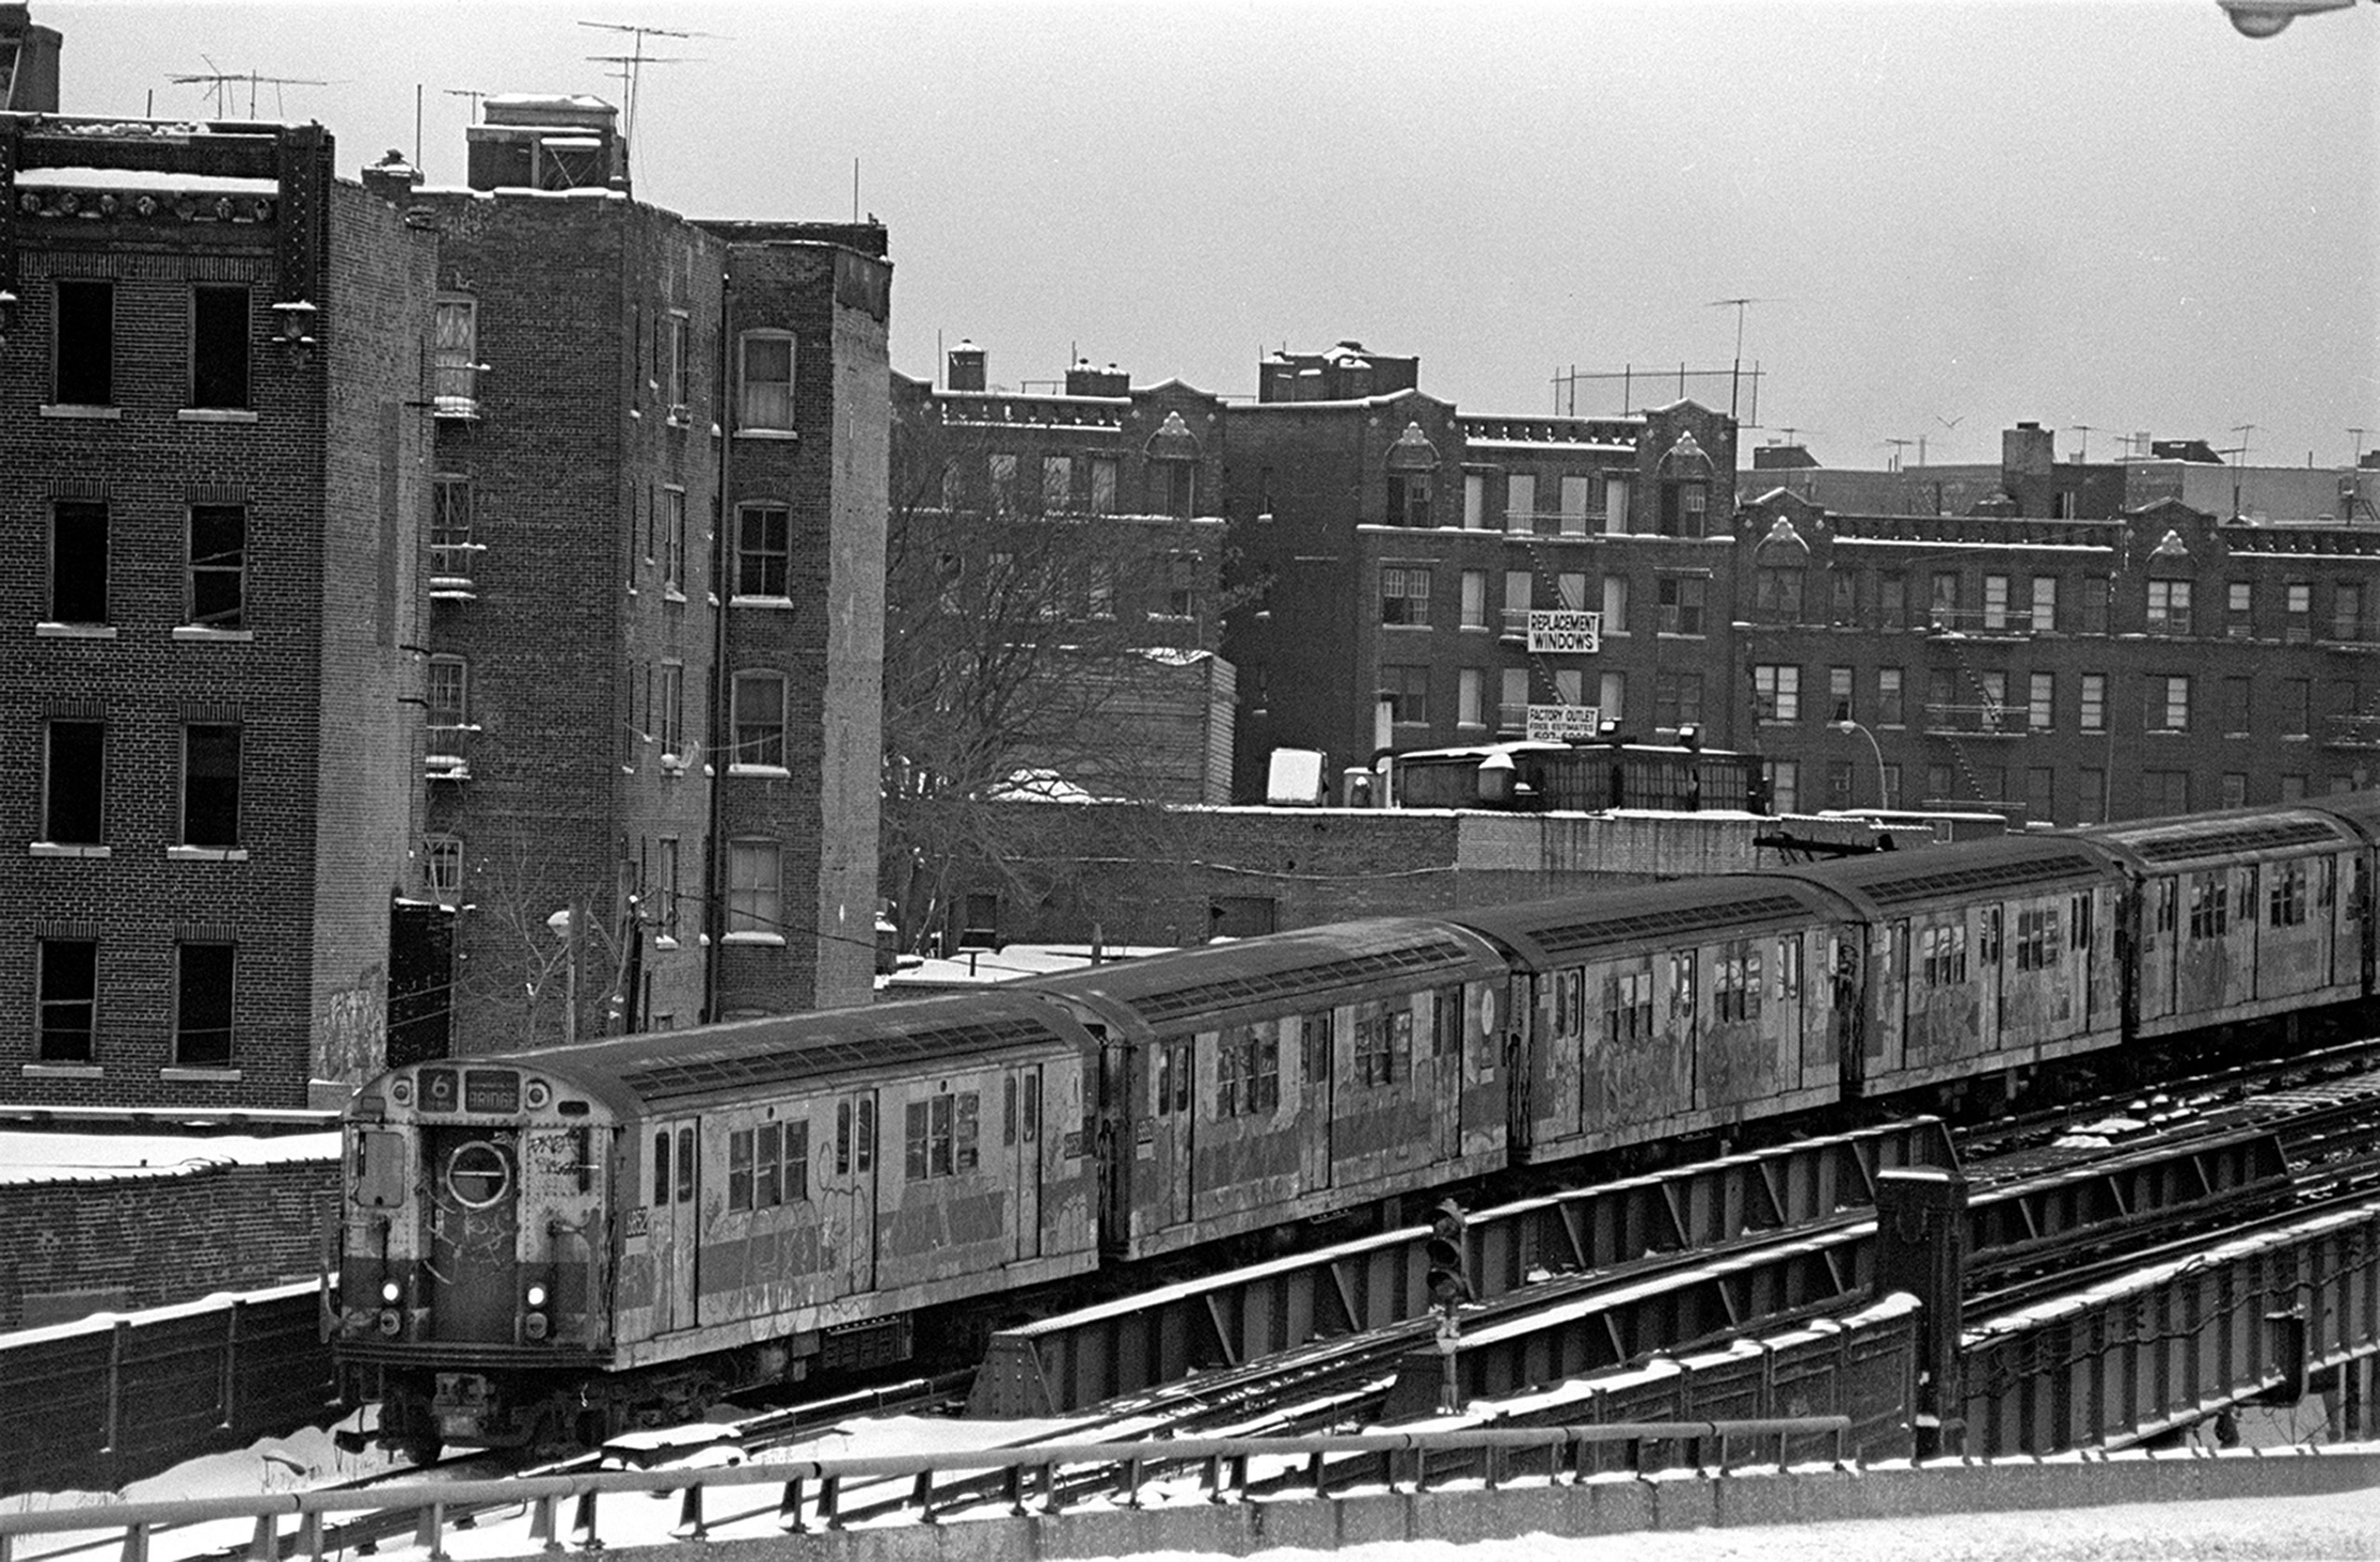 View of the number 6 local subway train as it passes through the South Bronx neighborhood, New York, New York, 1975.